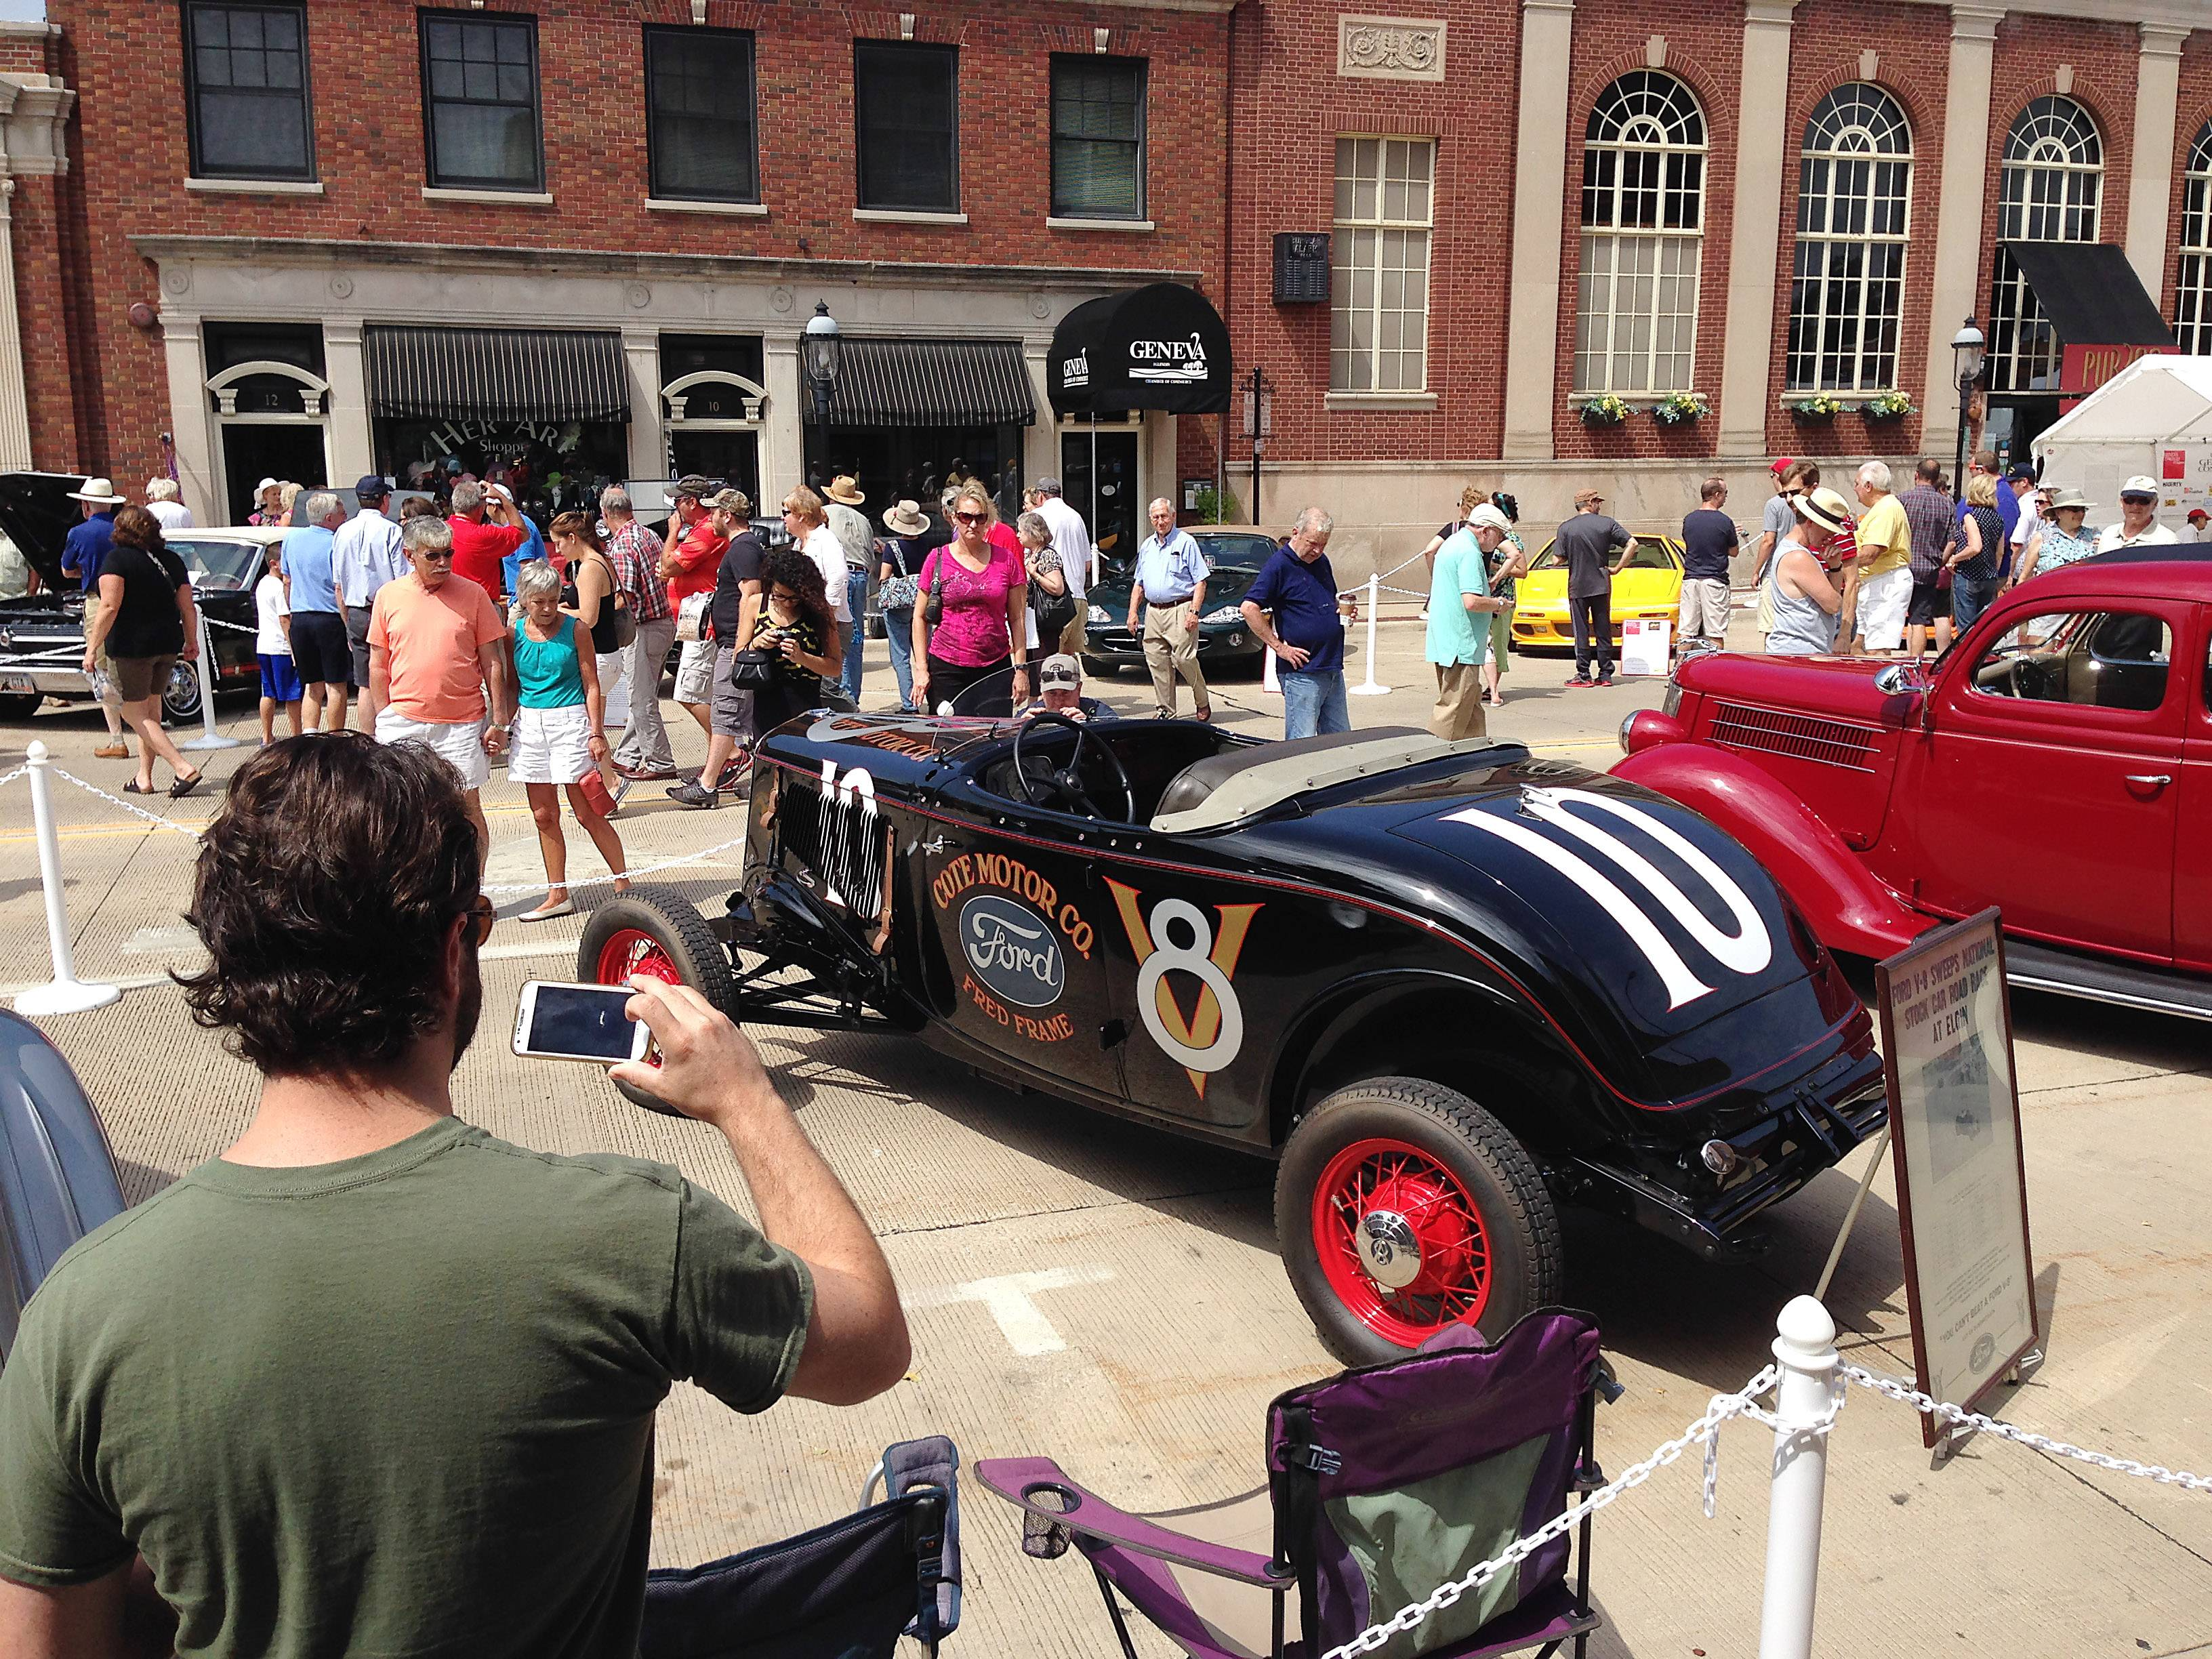 Auto enthusiasts stop Sunday in Geneva to take photos of the car that won the 1933 Elgin National Road Race. The car was one of more than 200 classic, exotic and rare automobiles on display during the Geneva Concours d'Elegance.